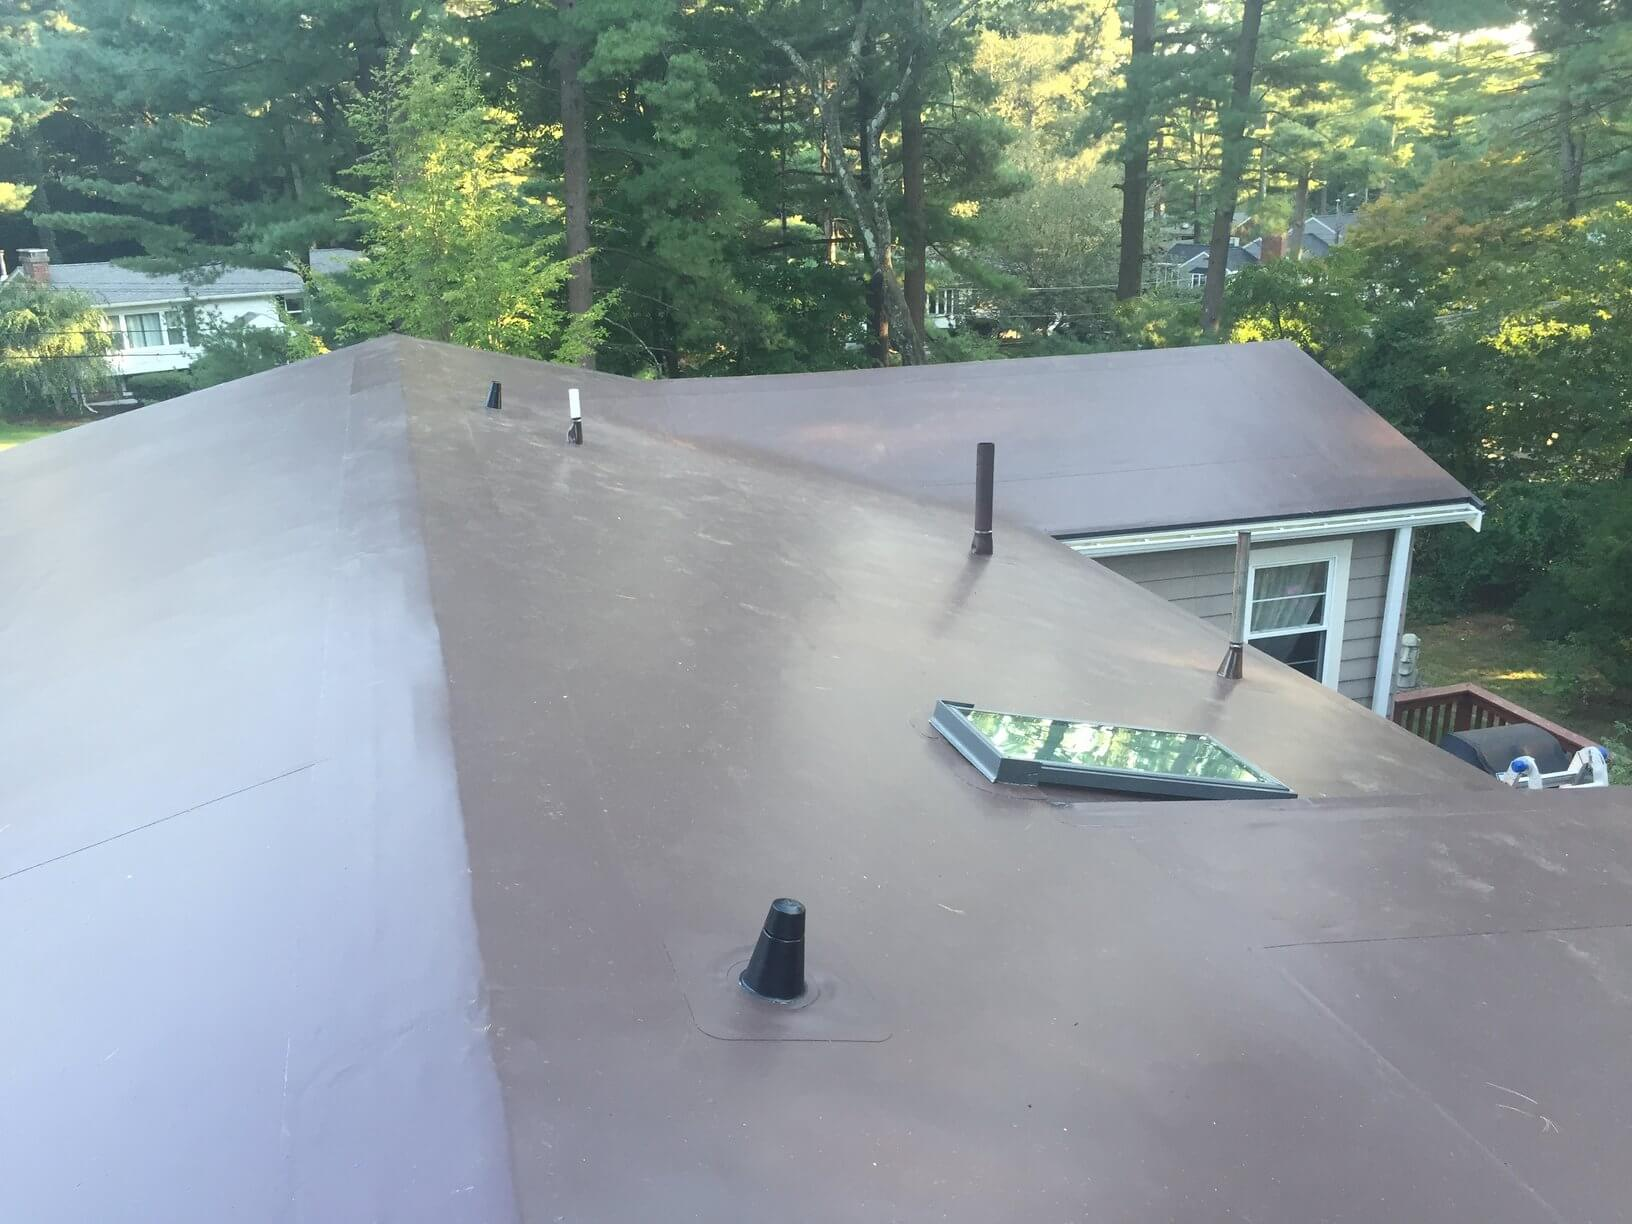 Pvc membrane installation on low pitch roof in wayland ma Low pitched roof